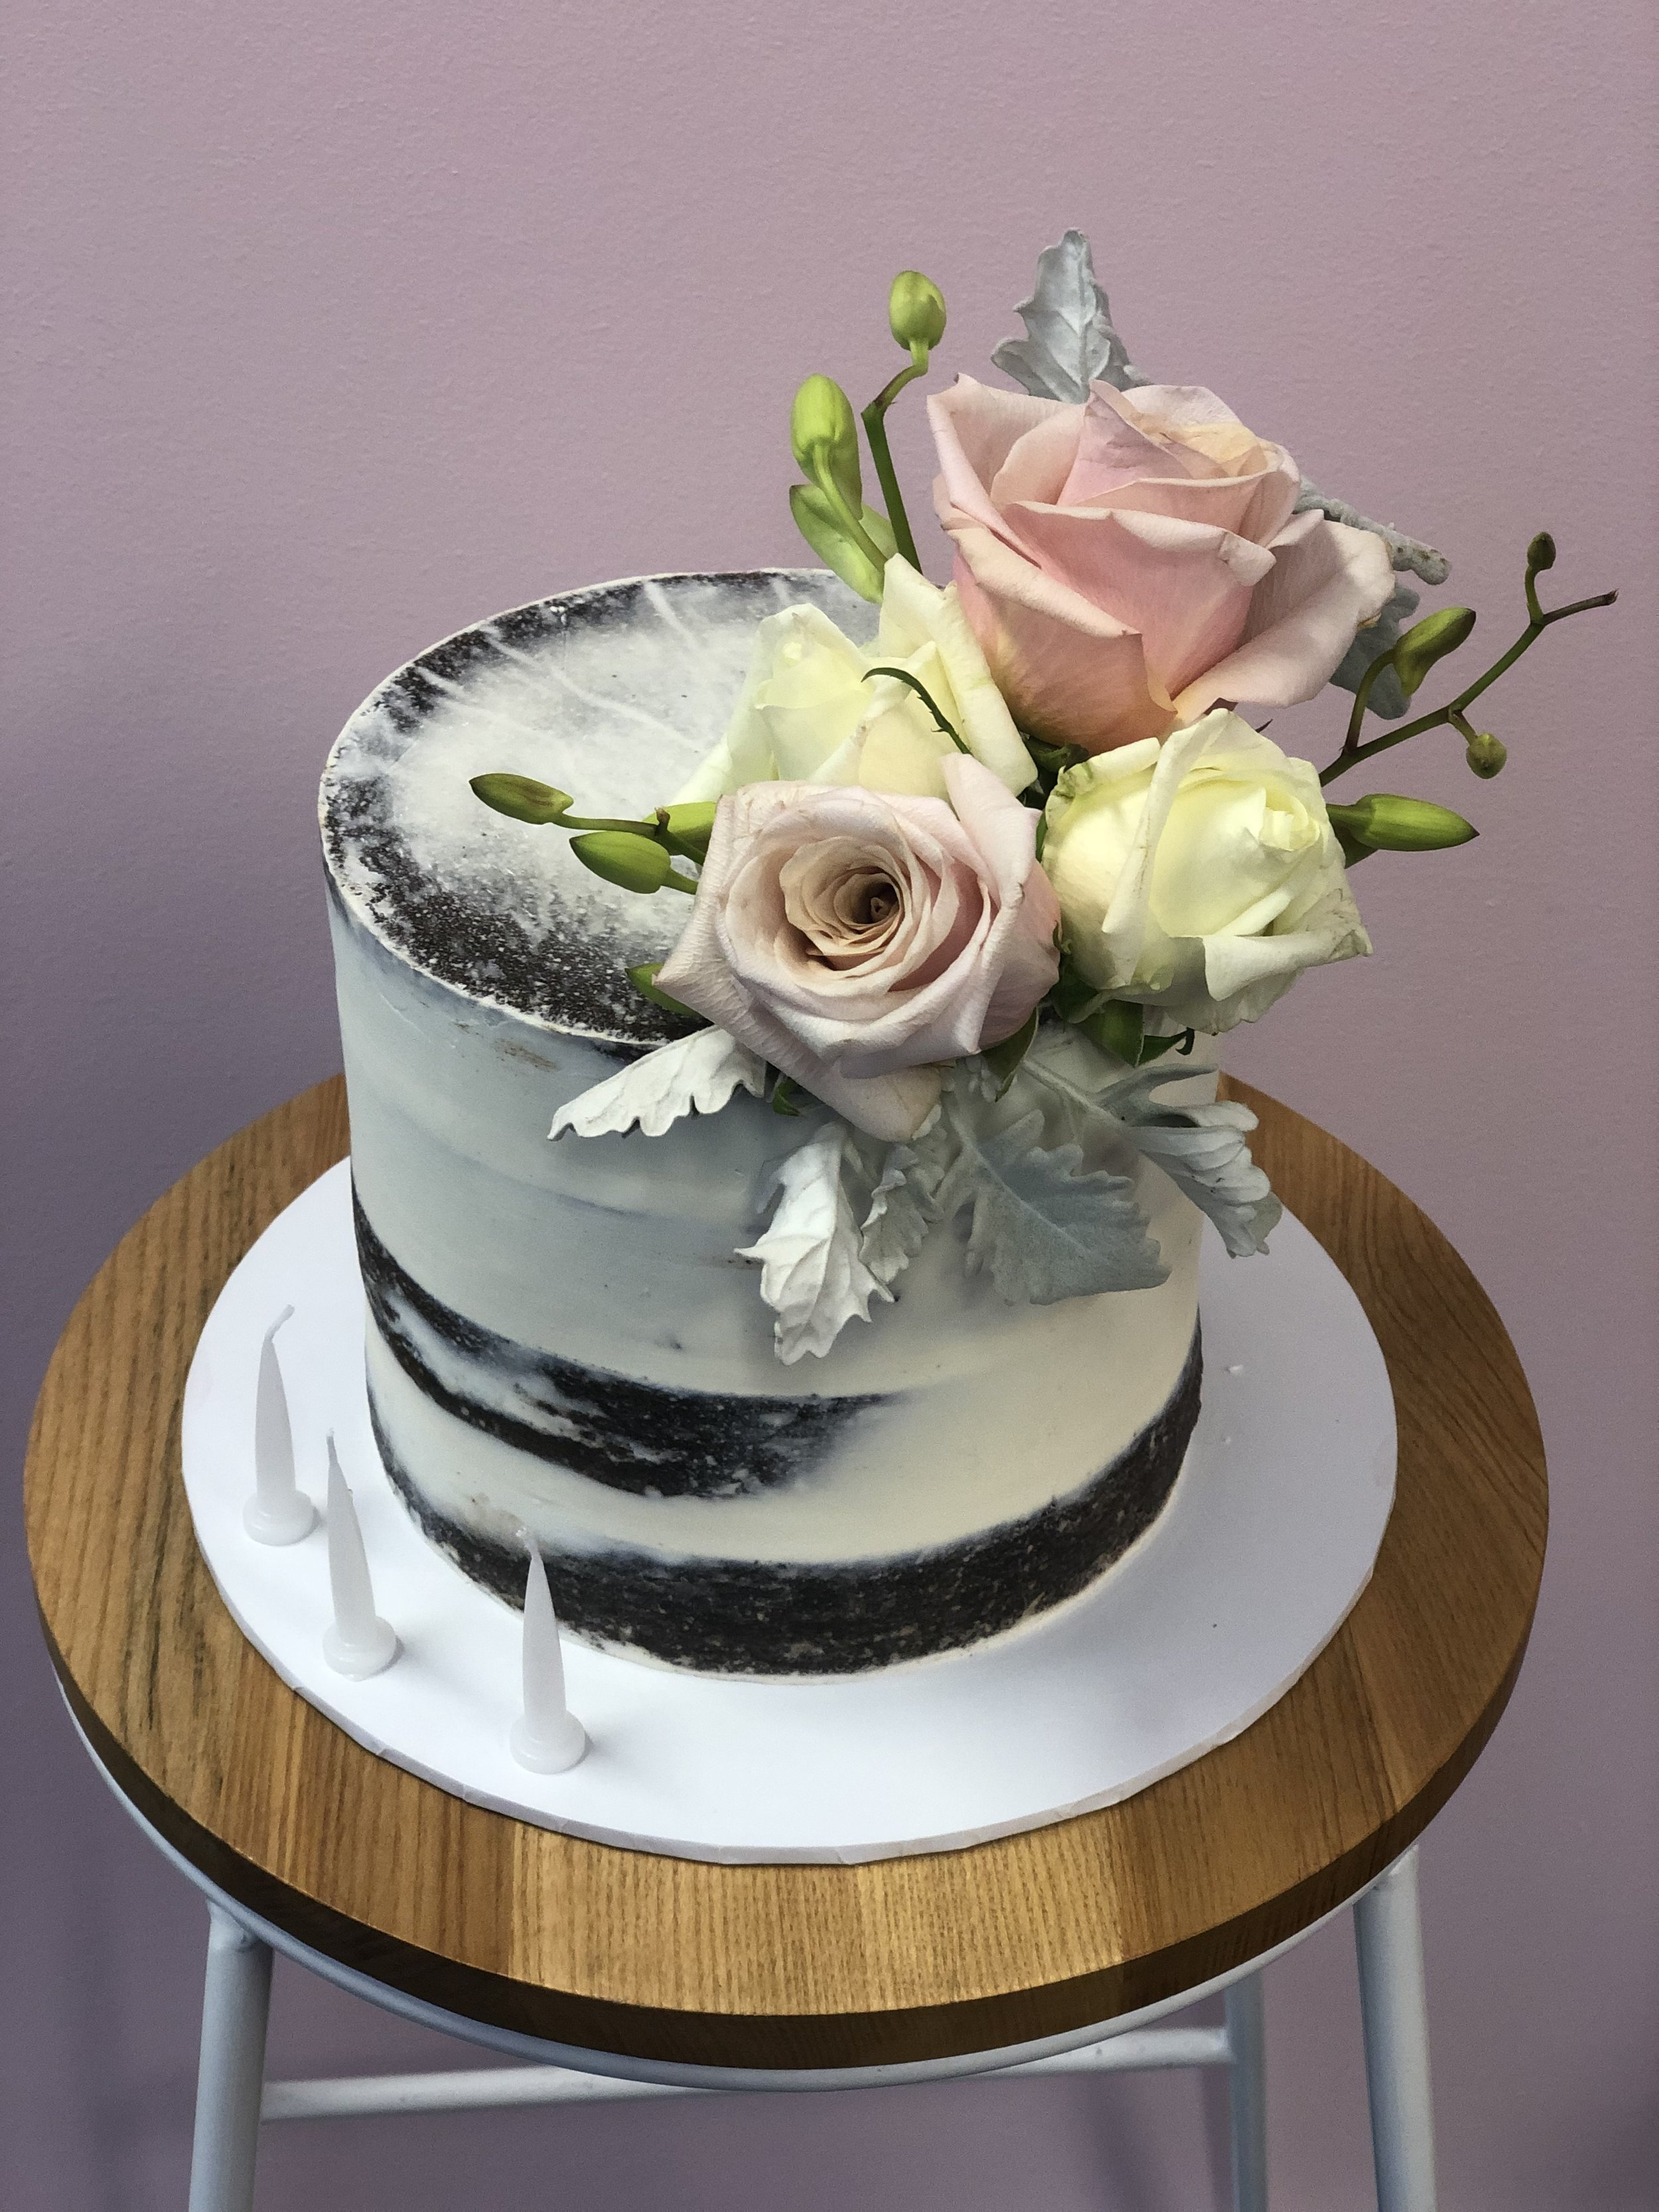 Chocolate Naked Cake with Fresh Flowers